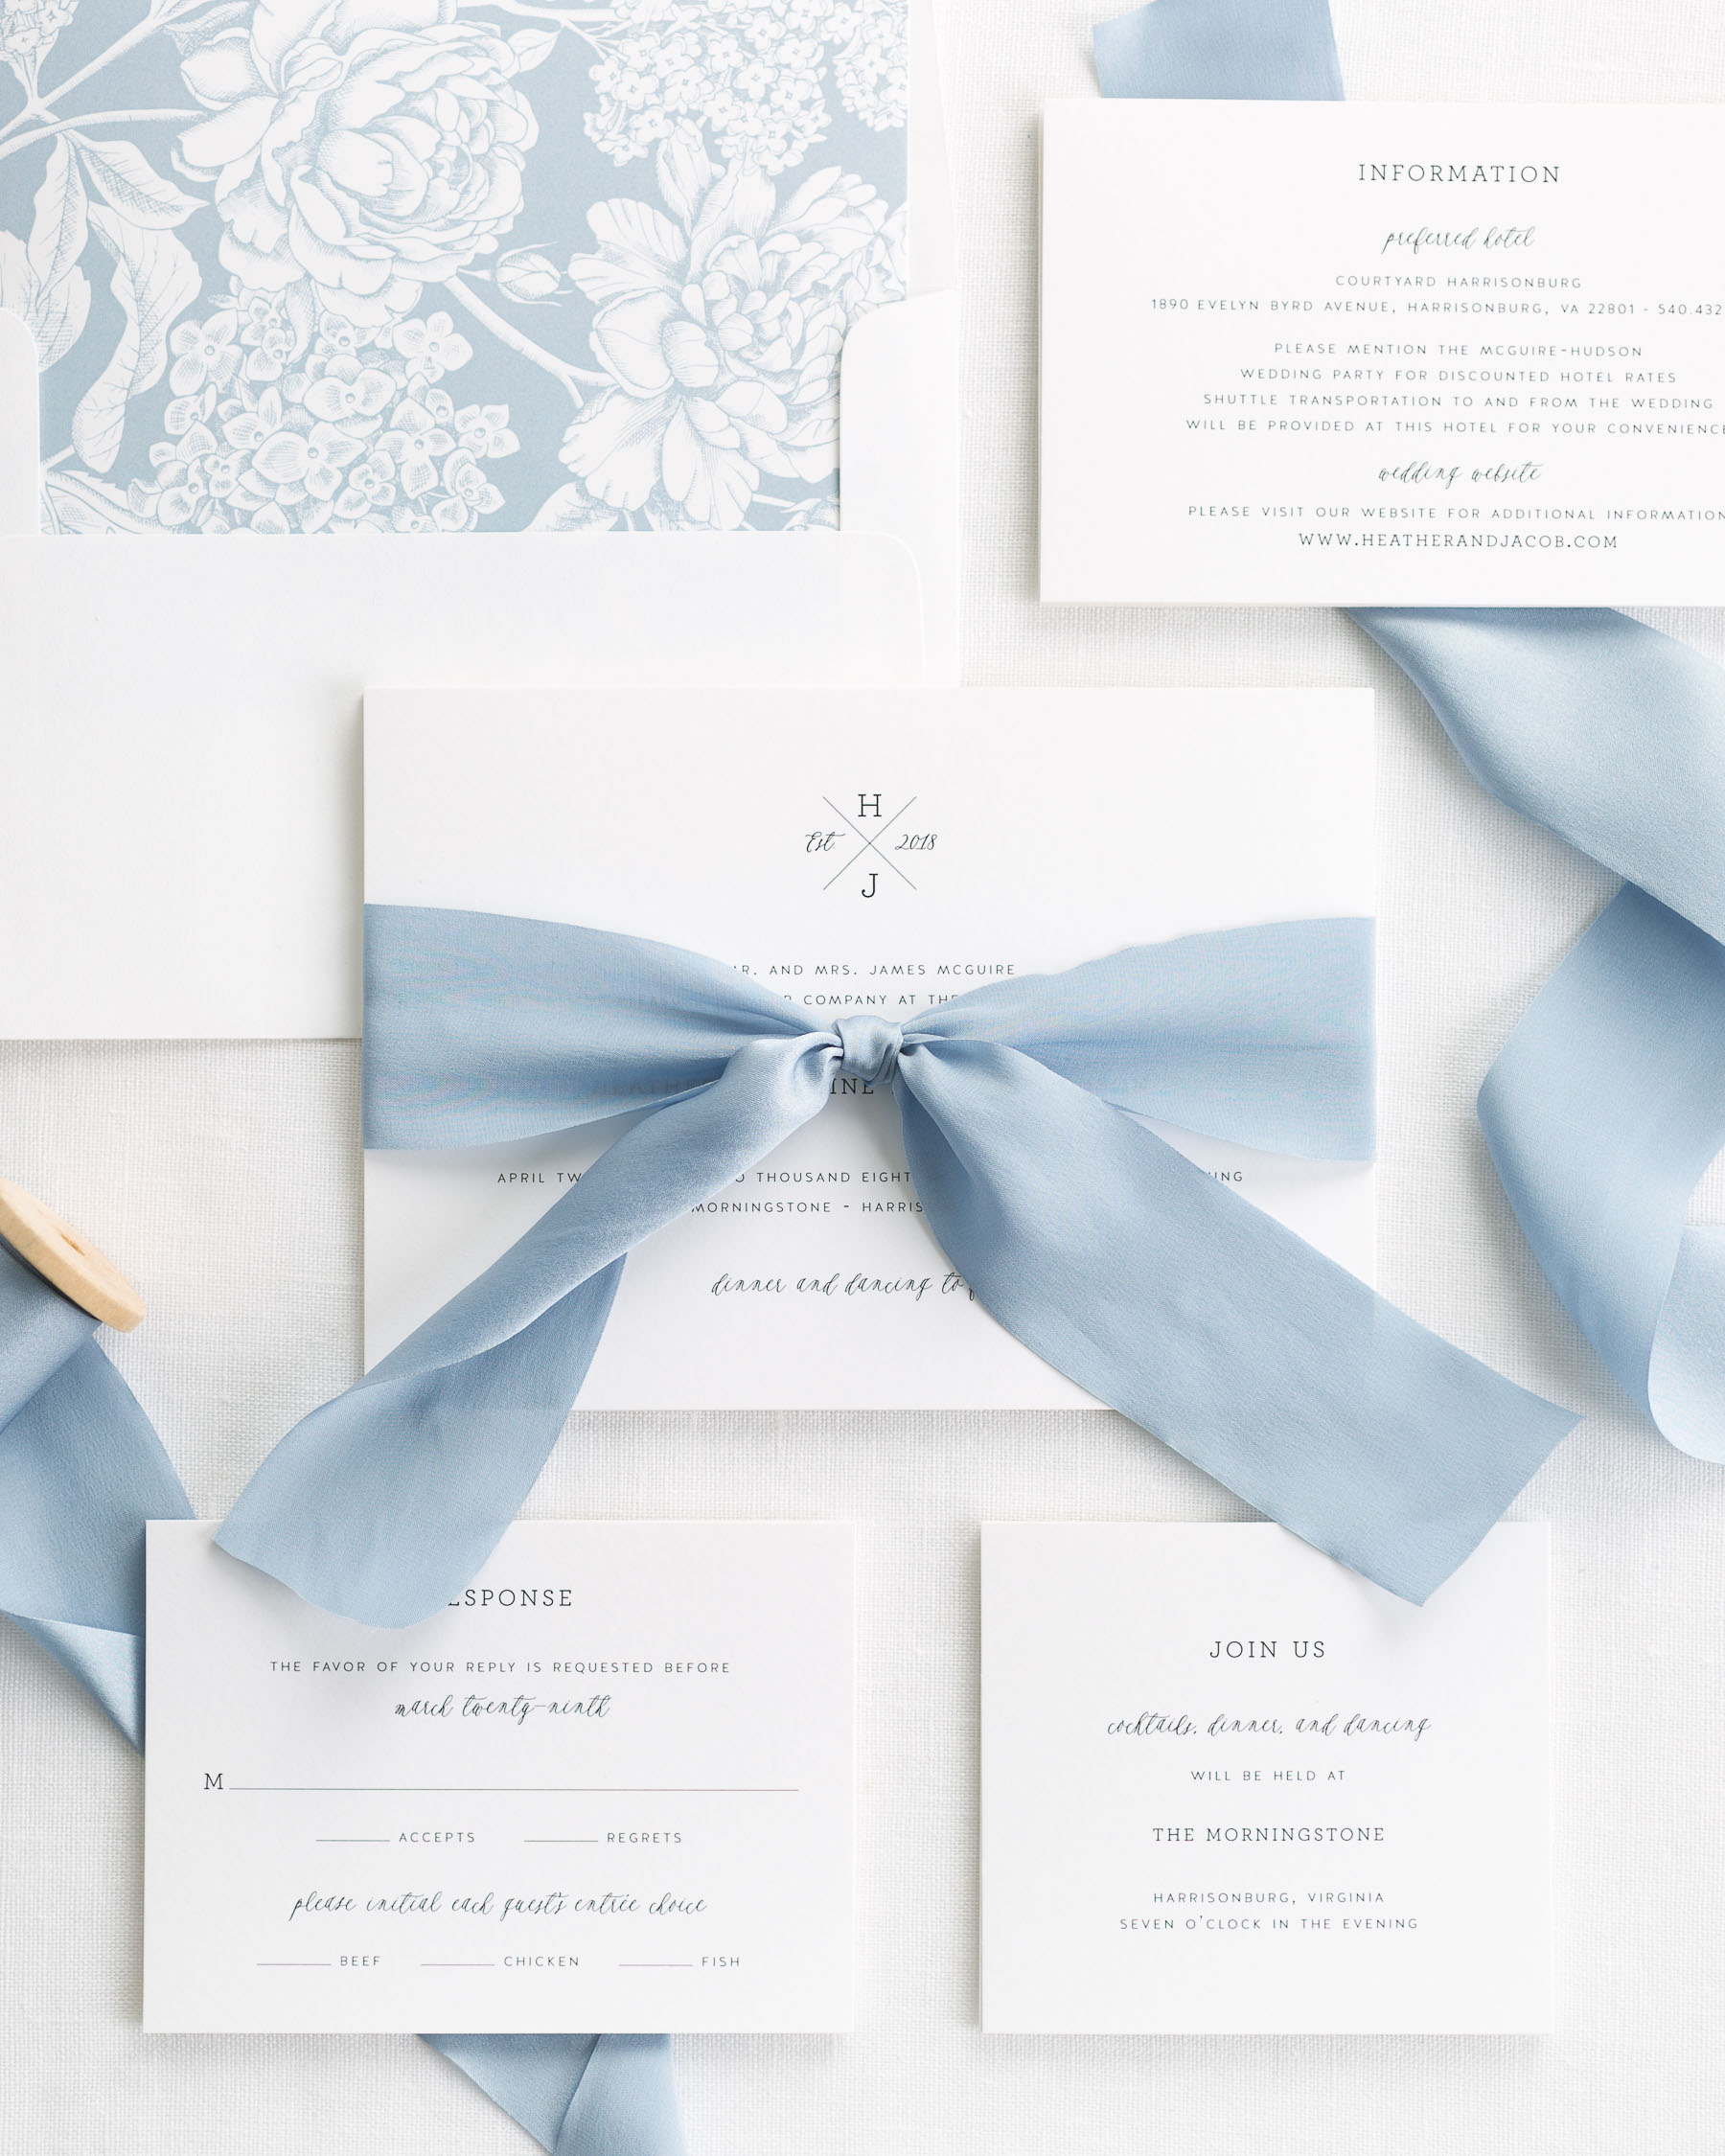 Wedding Invitations With Ribbons: Cross Monogram Ribbon Wedding Invitations